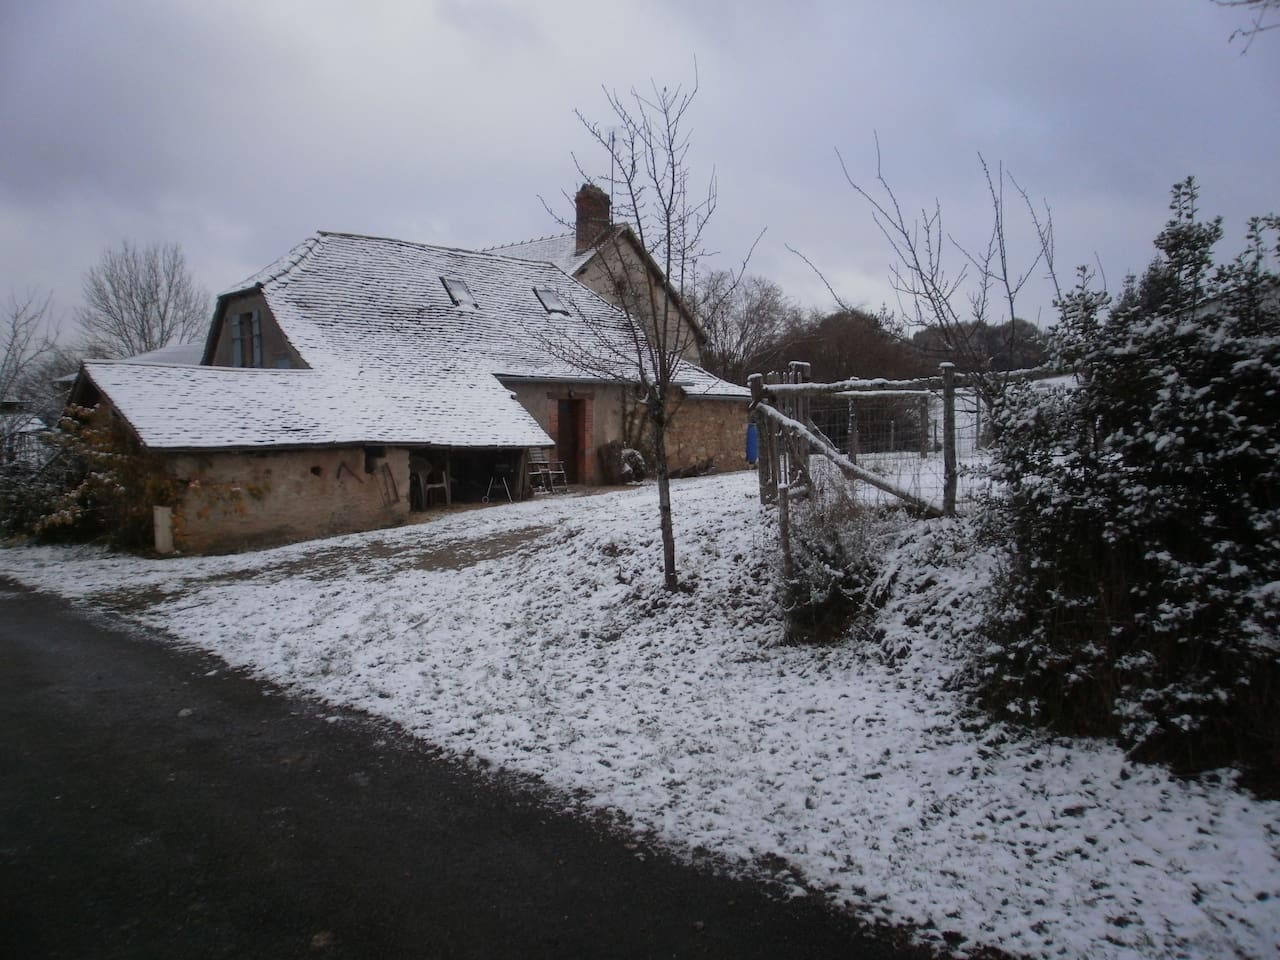 Le Petit Cottage in the snow but cosy and warm inside.